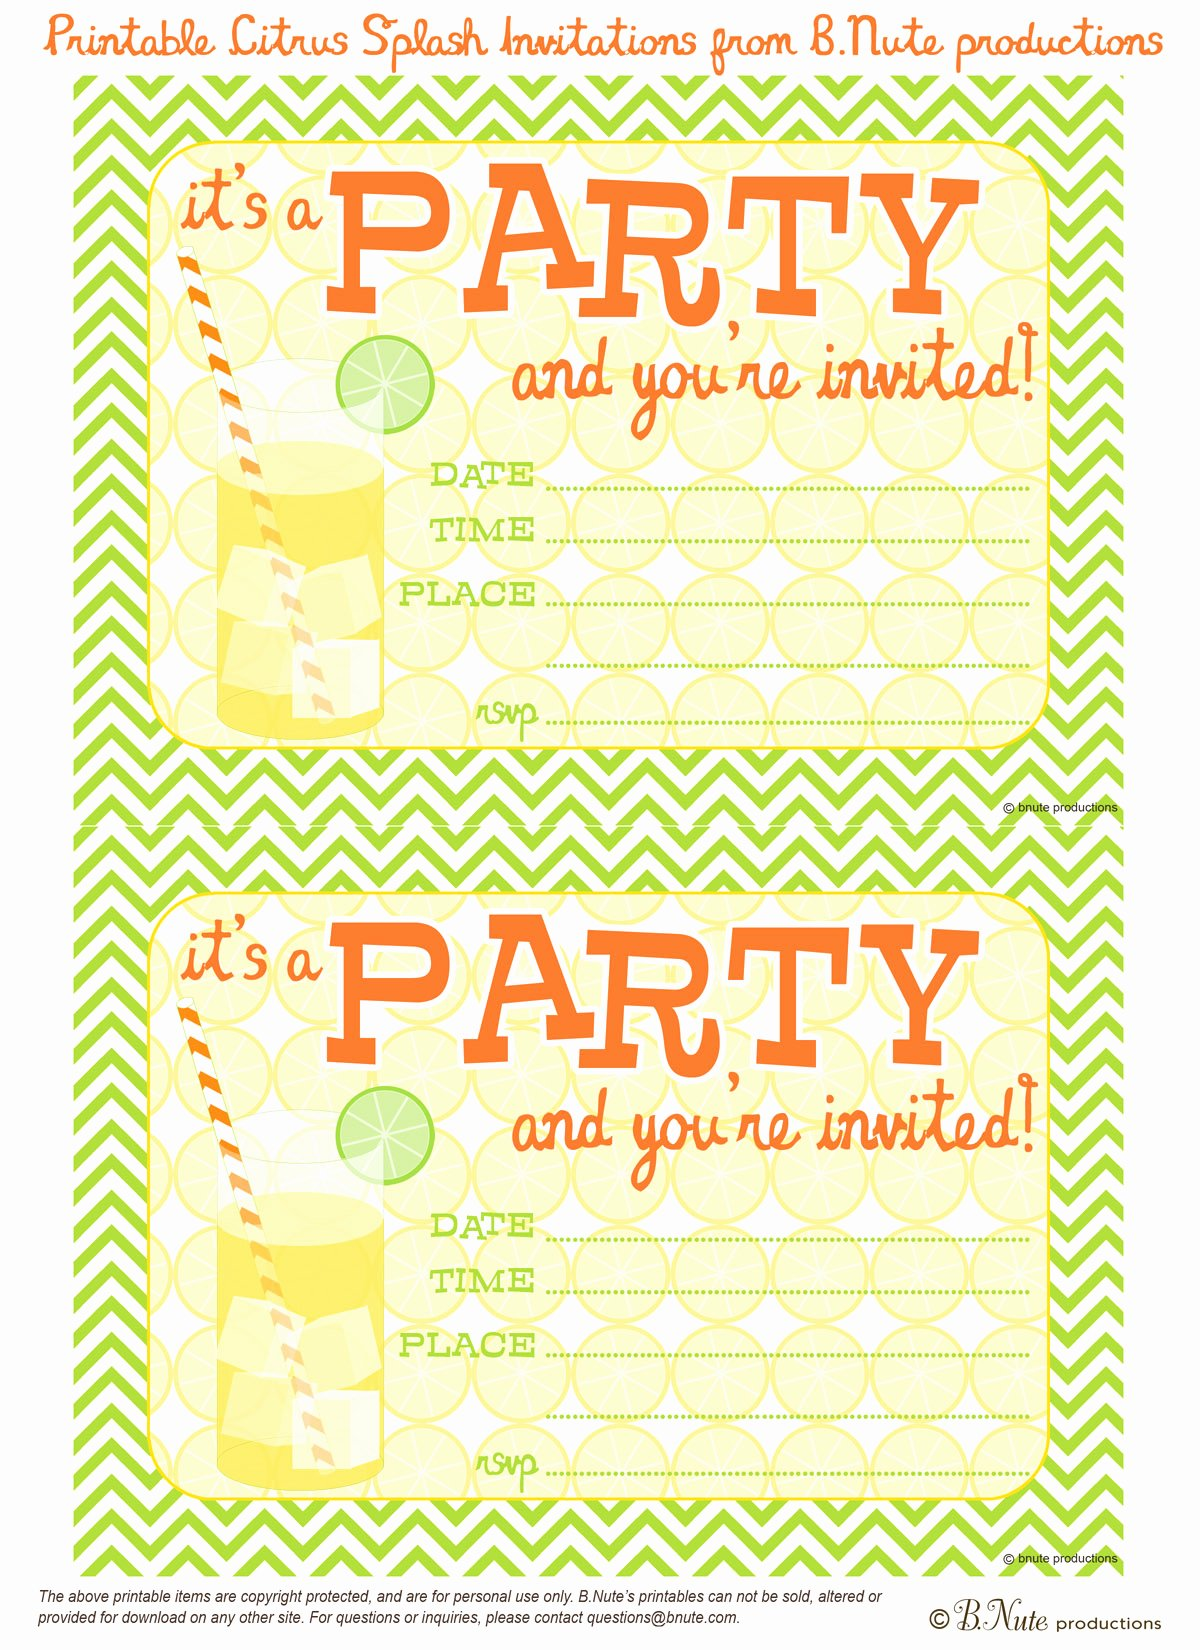 Printable Party Invitation Template Luxury Bnute Productions Free Printable Citrus Splash Invitations